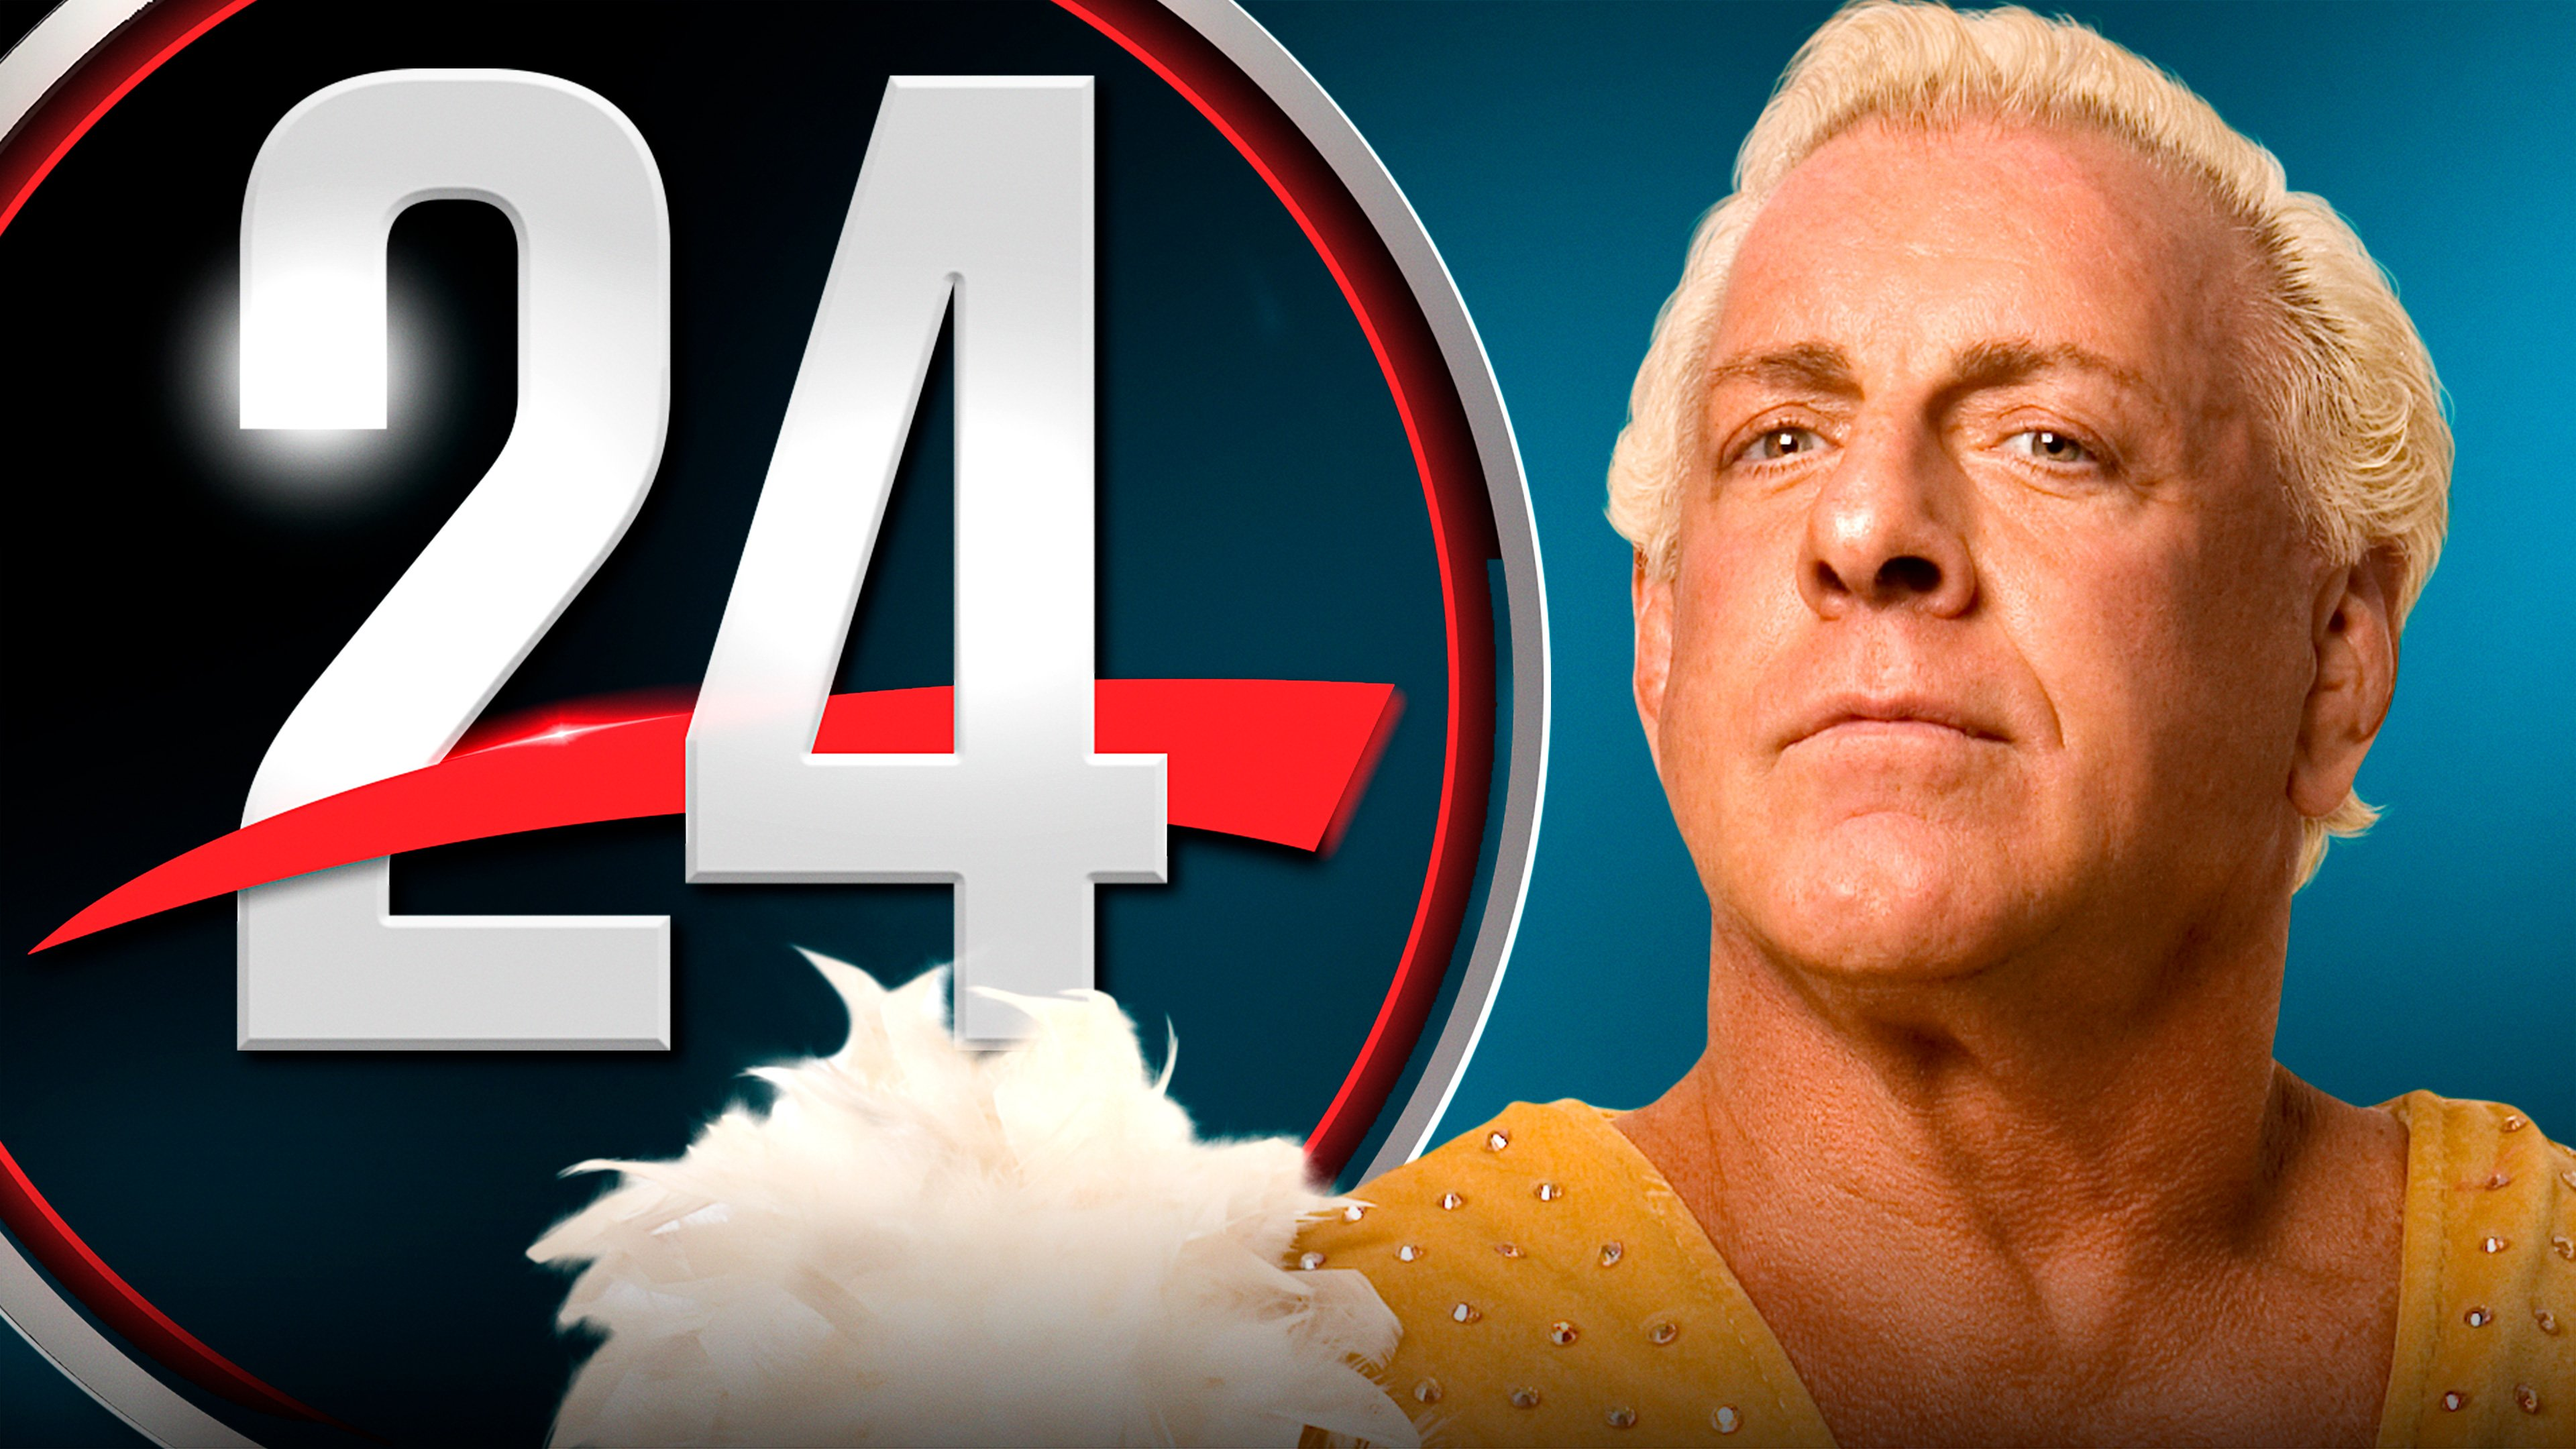 WWE 24: Ric Flair: The Final Farewell